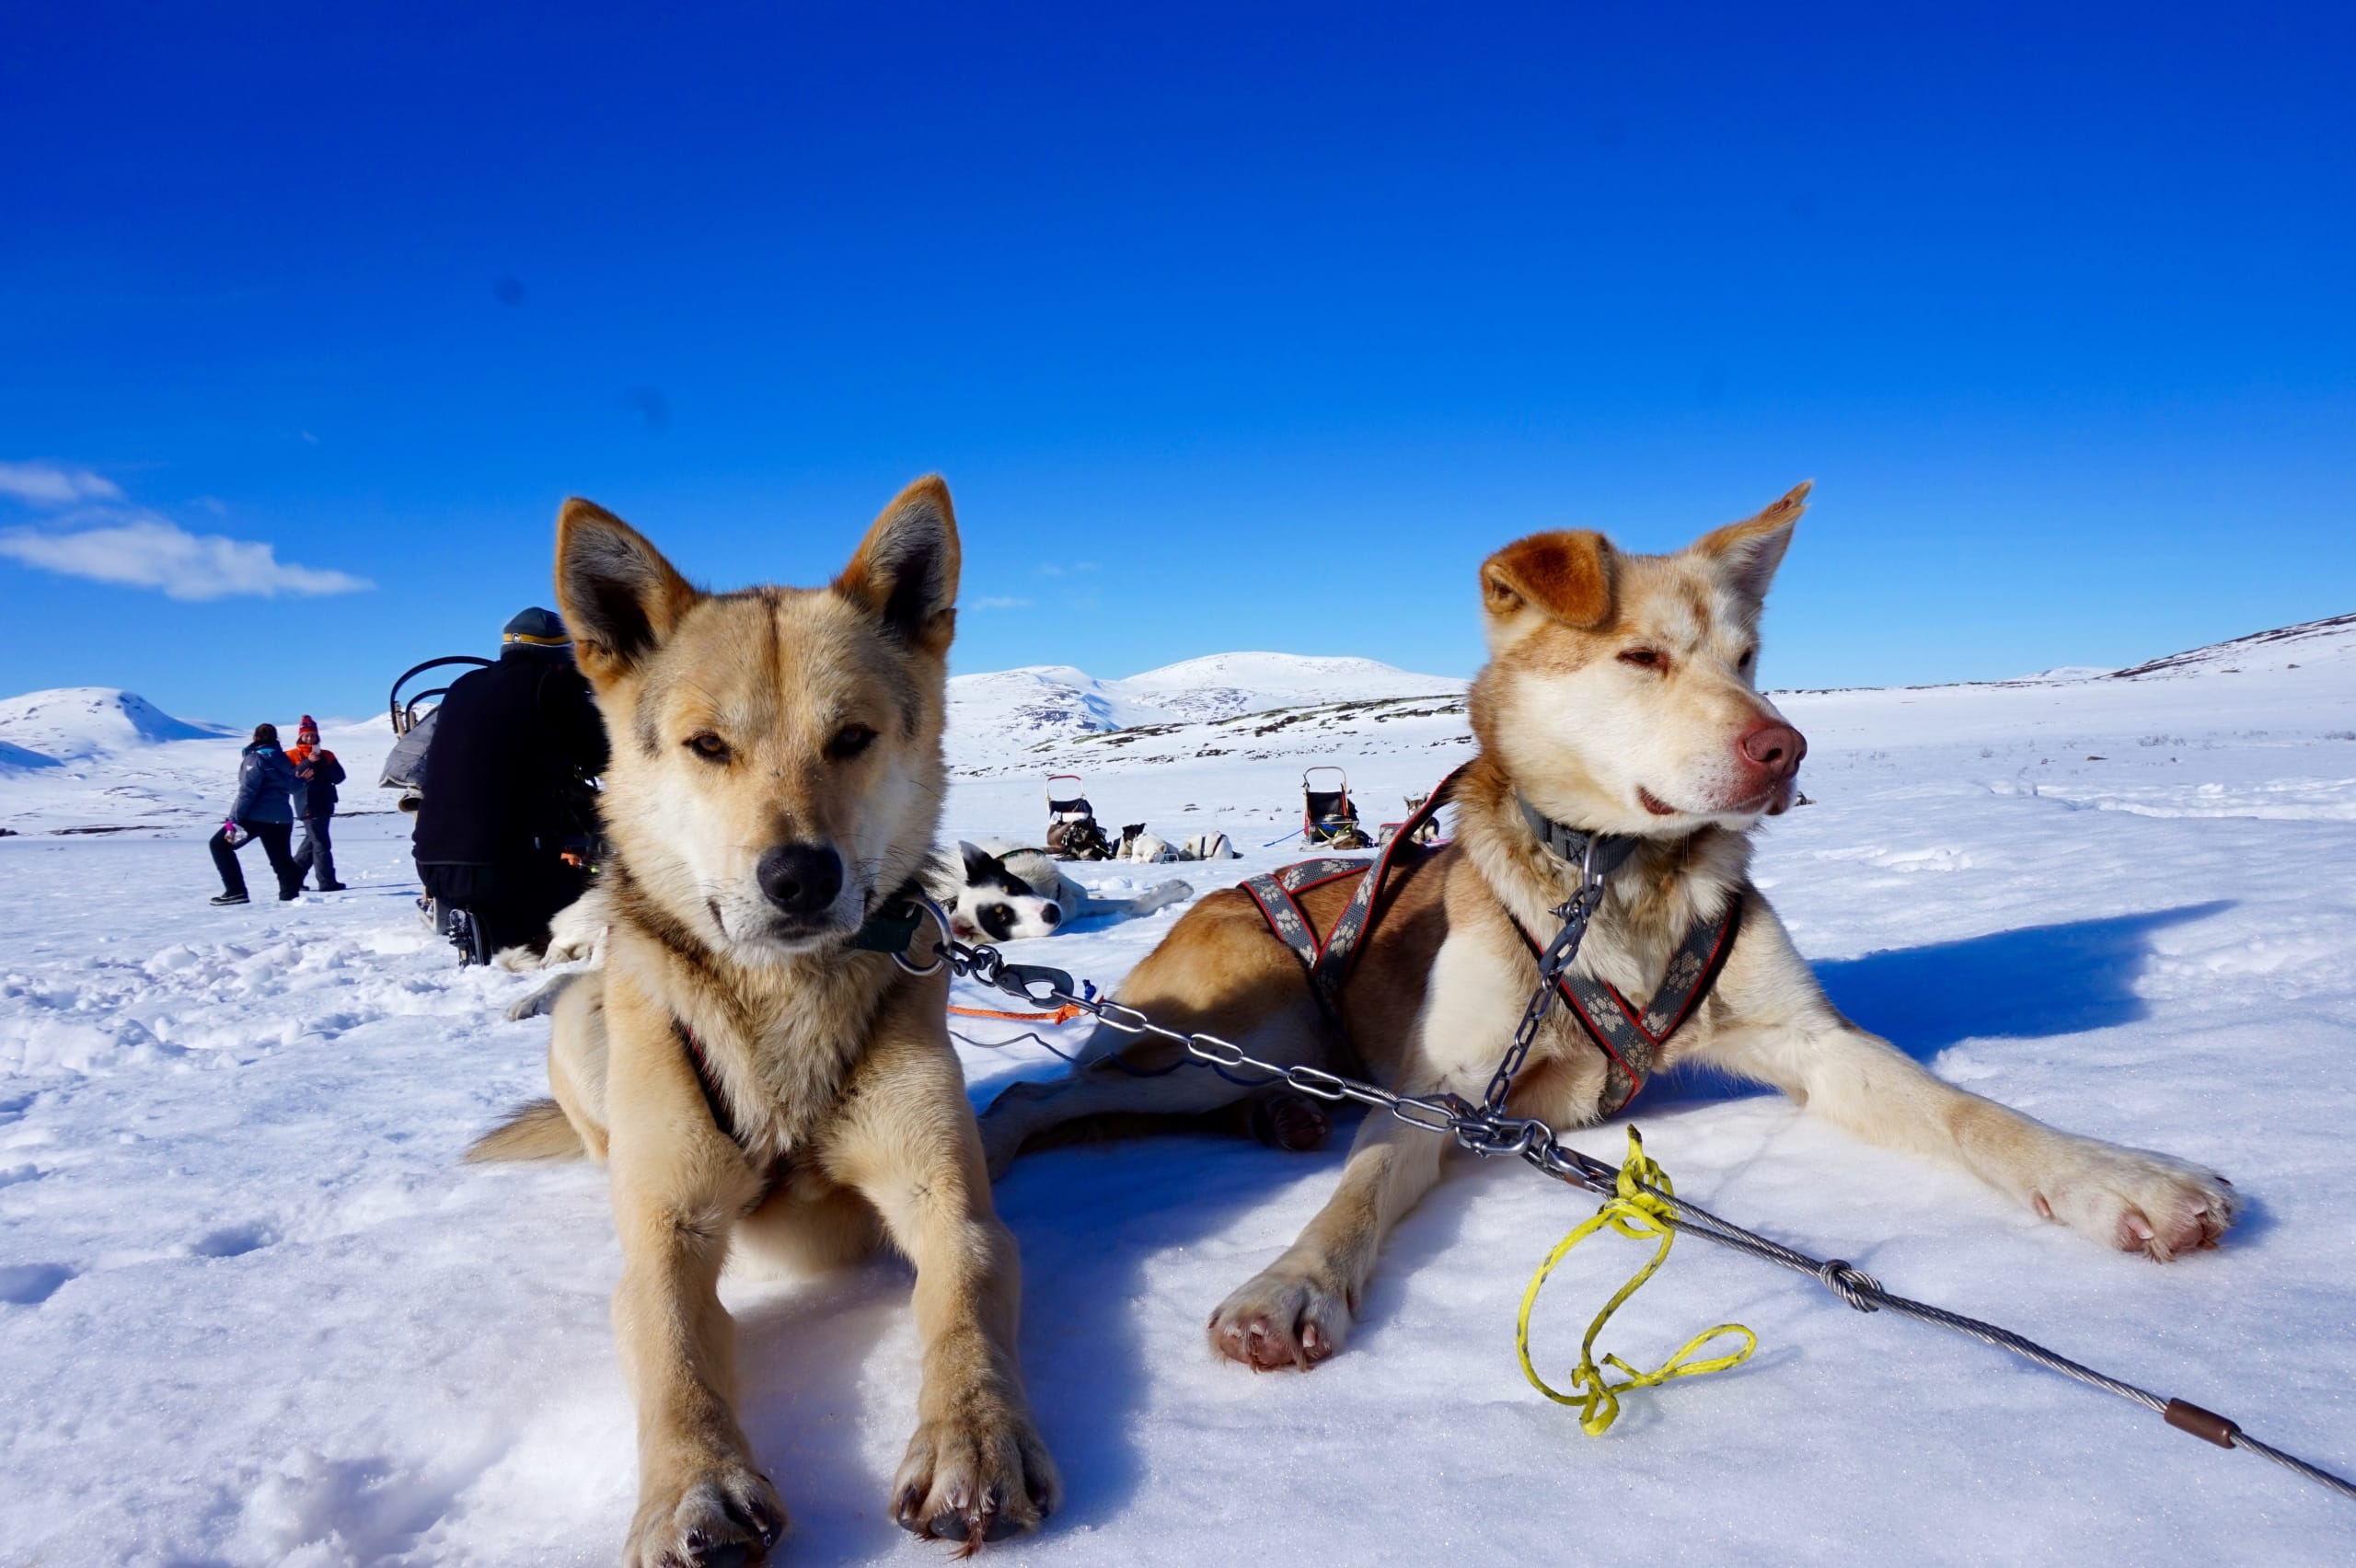 Huskies taking a rest after a day of sledding